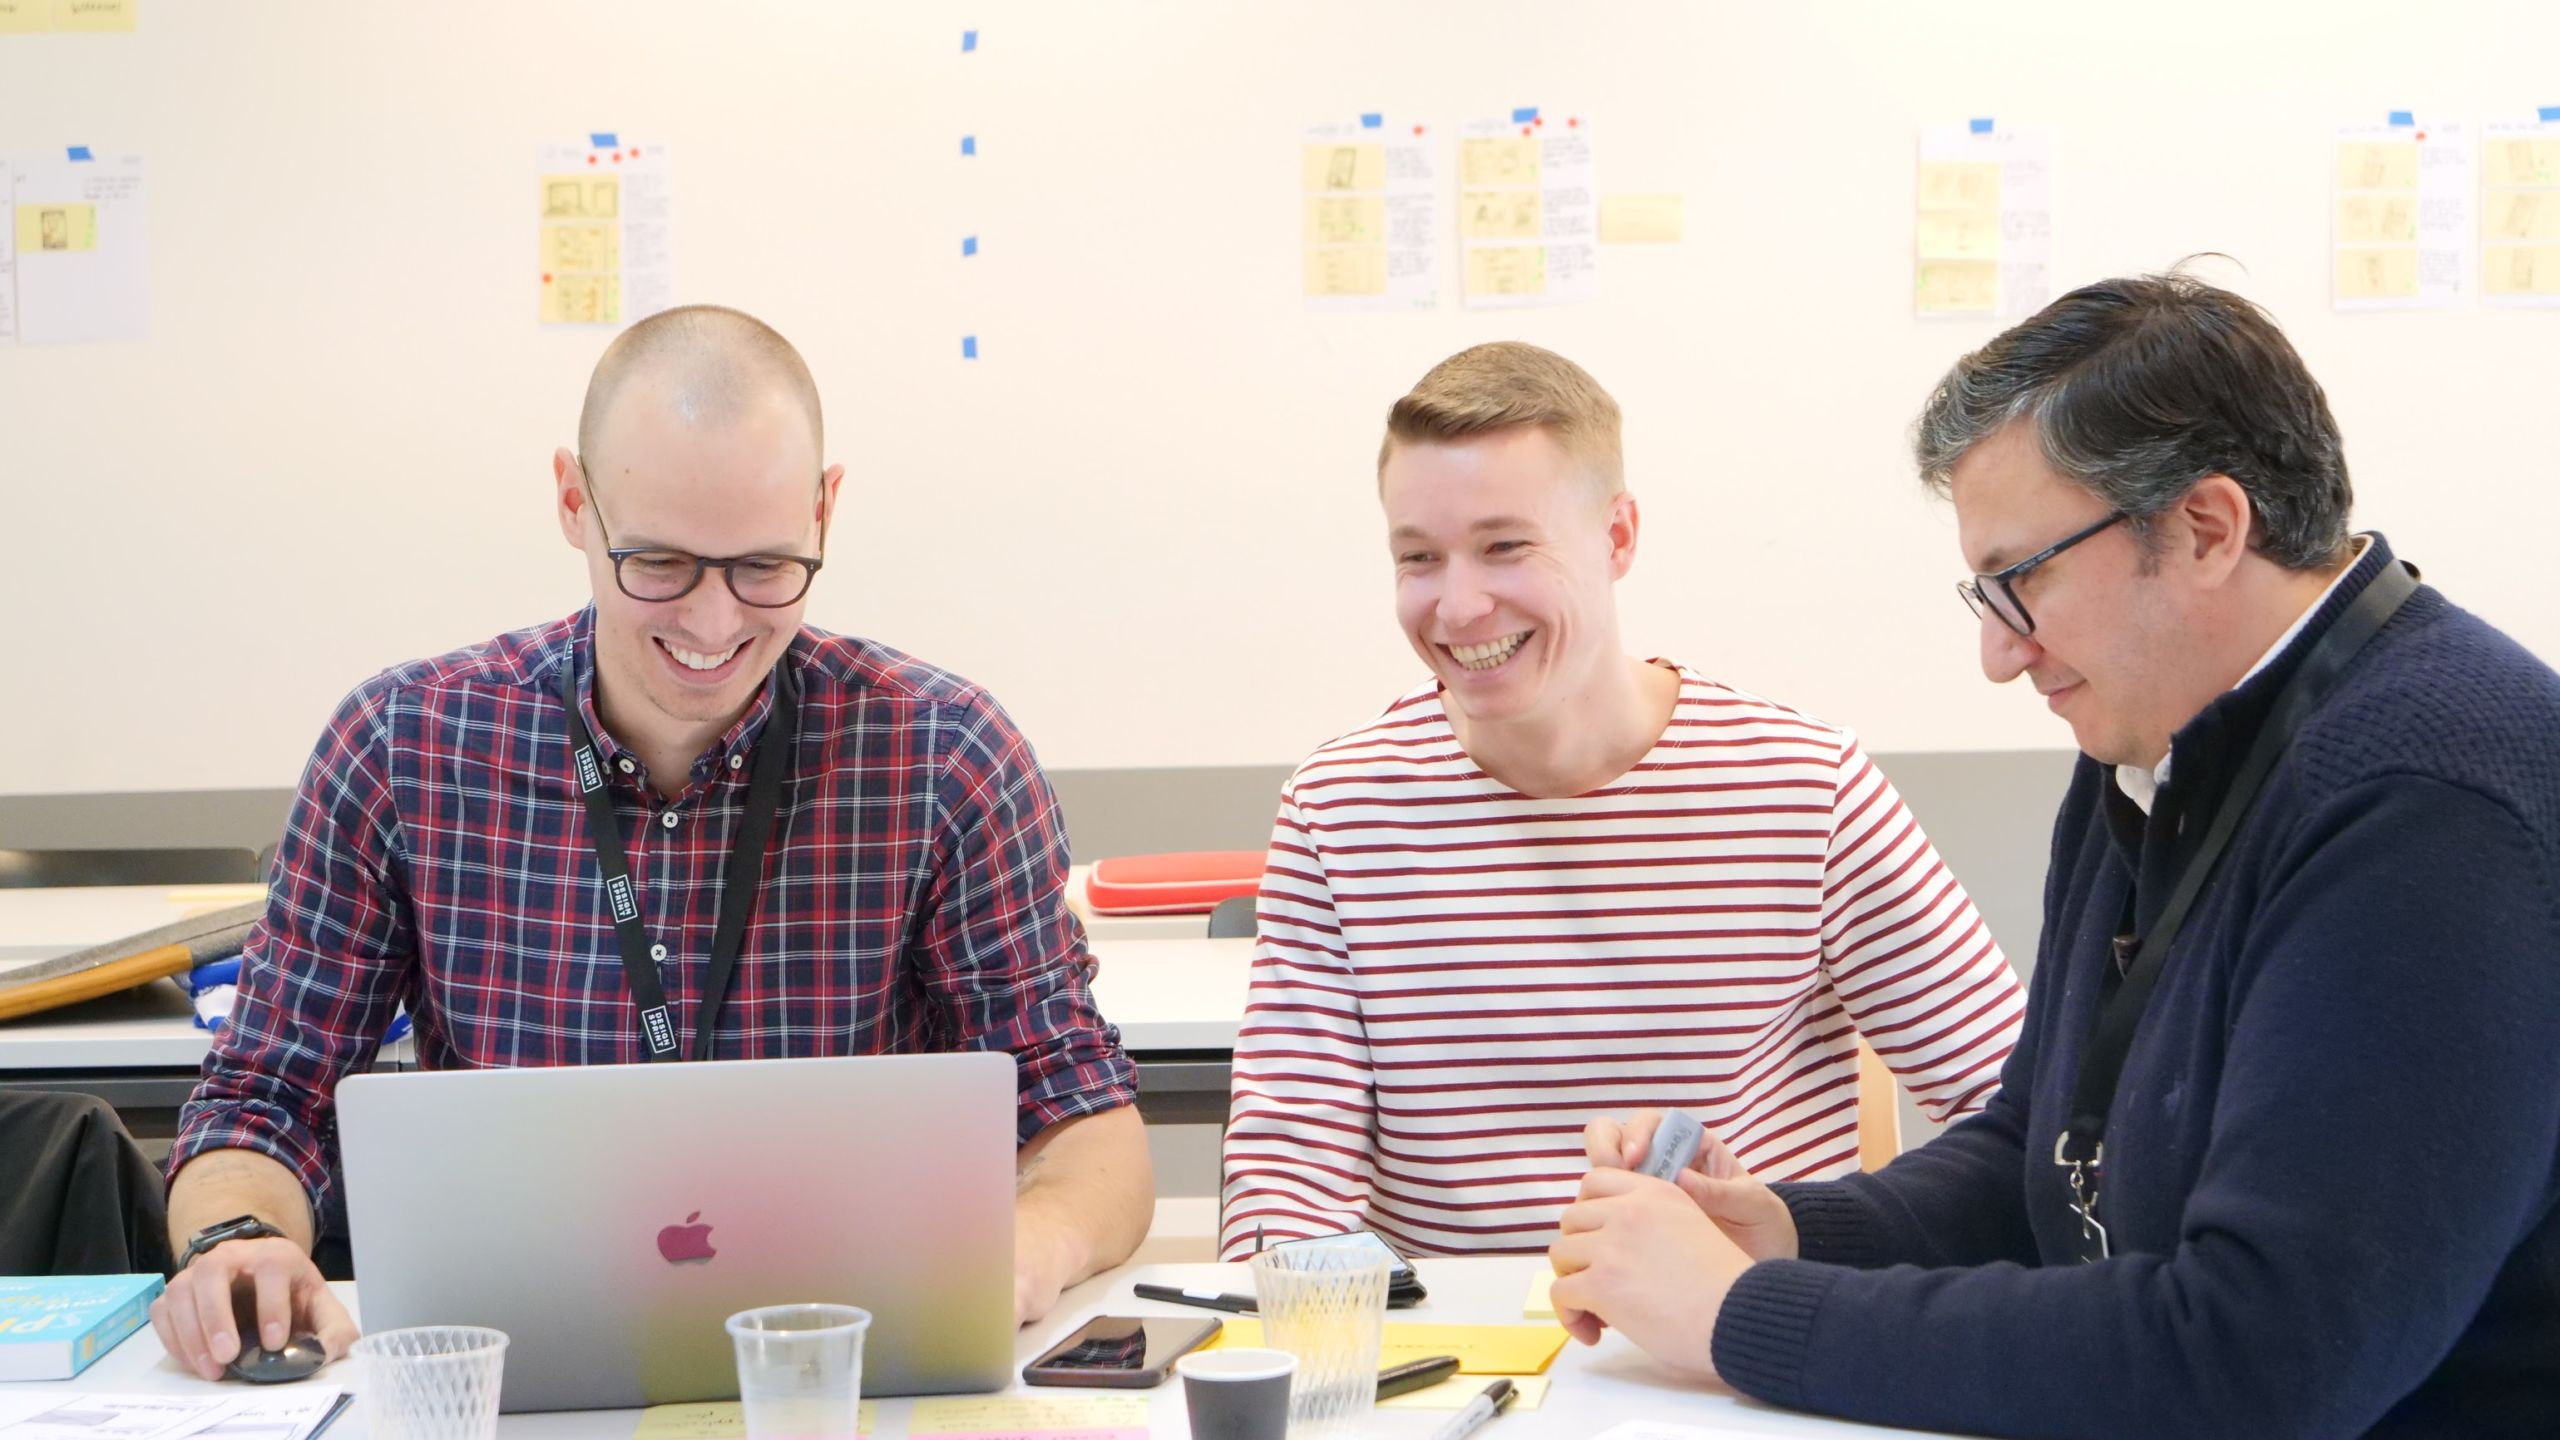 Design Sprint Masterclass advanced